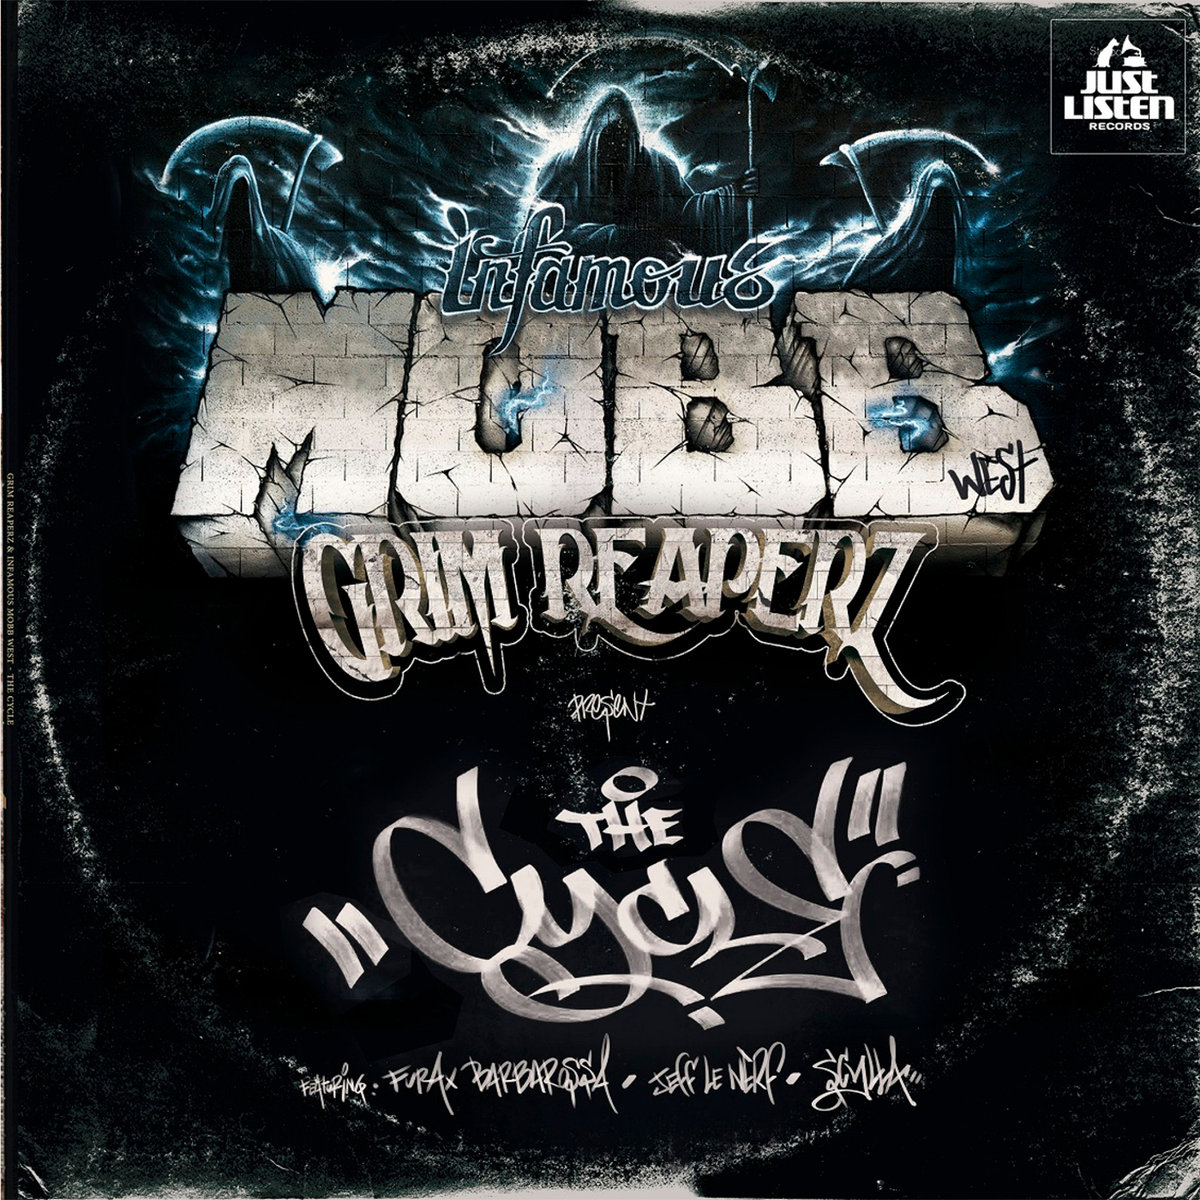 Infamous_mobb___grim_reaperz_presentan_the_cycle